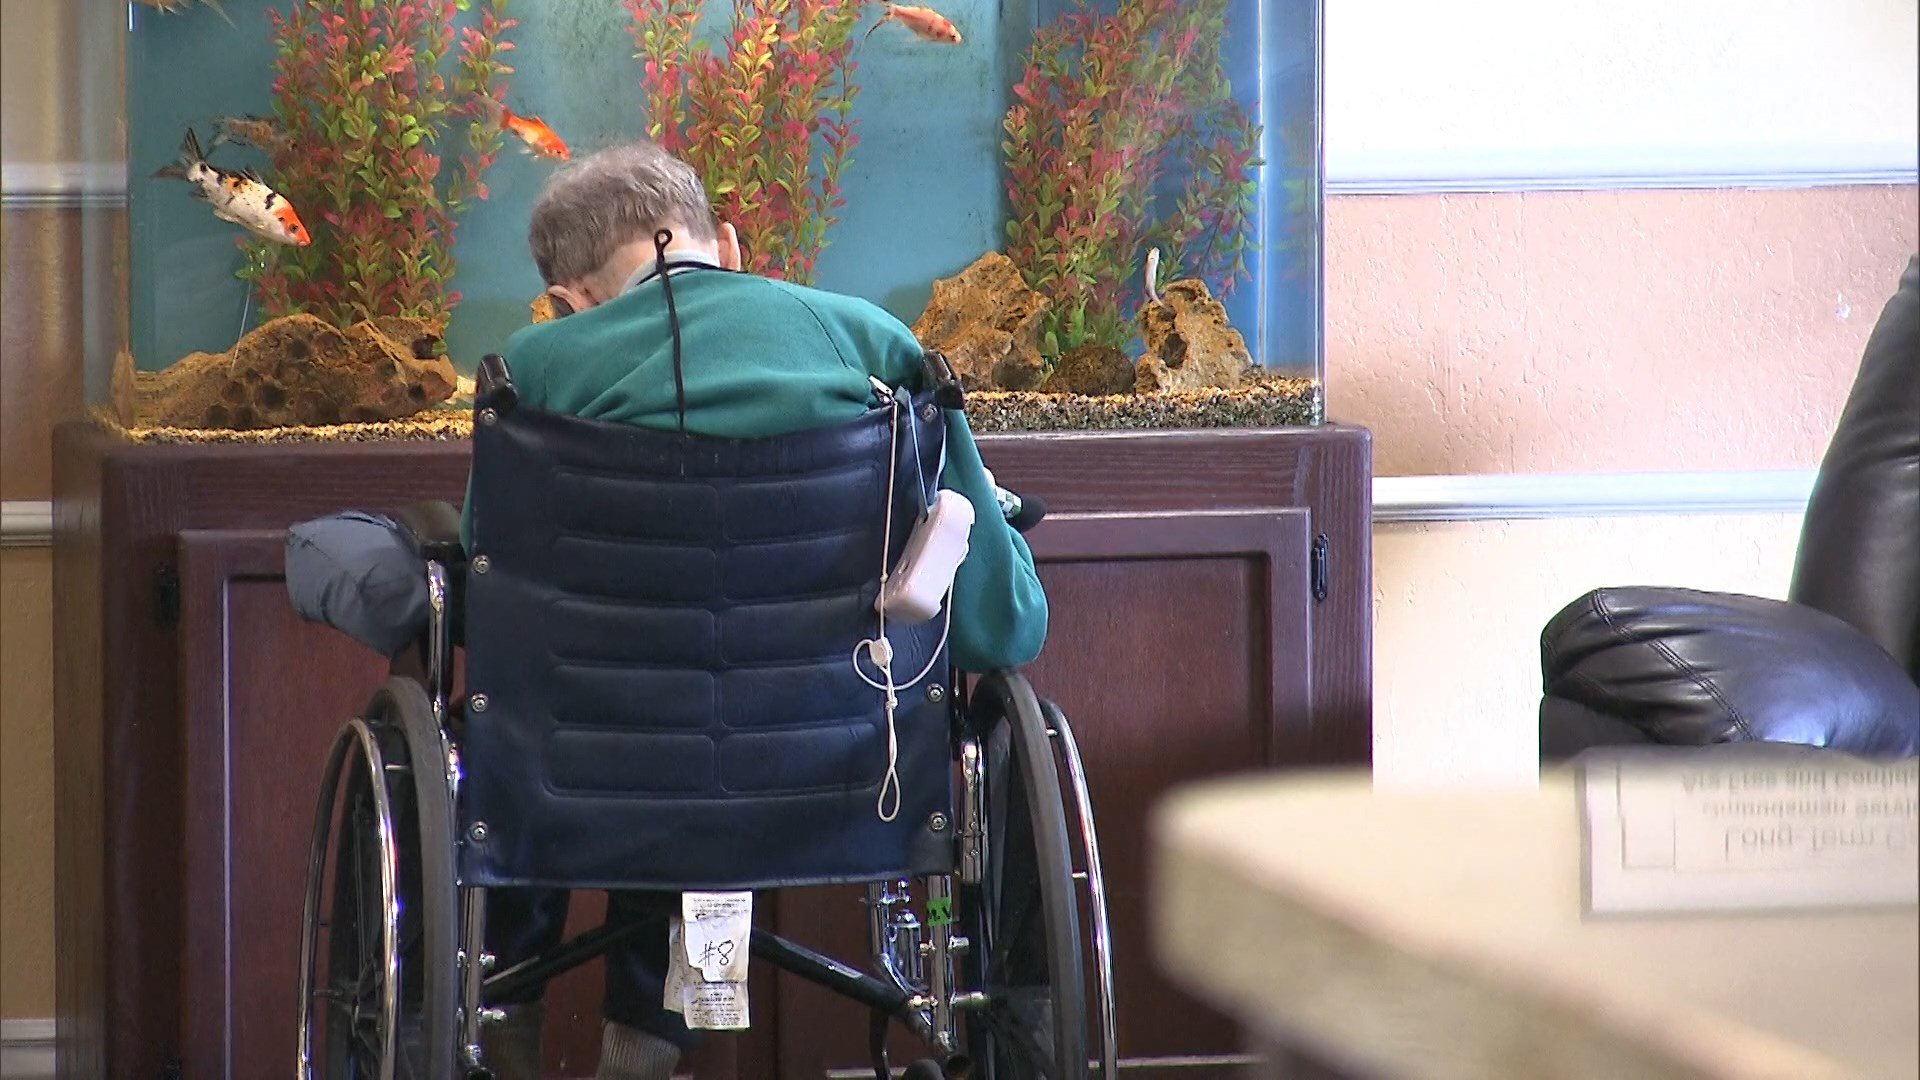 PA Long Term Care Facilities Say Process of Vaccinating Residents Too Slow - Erie News Now